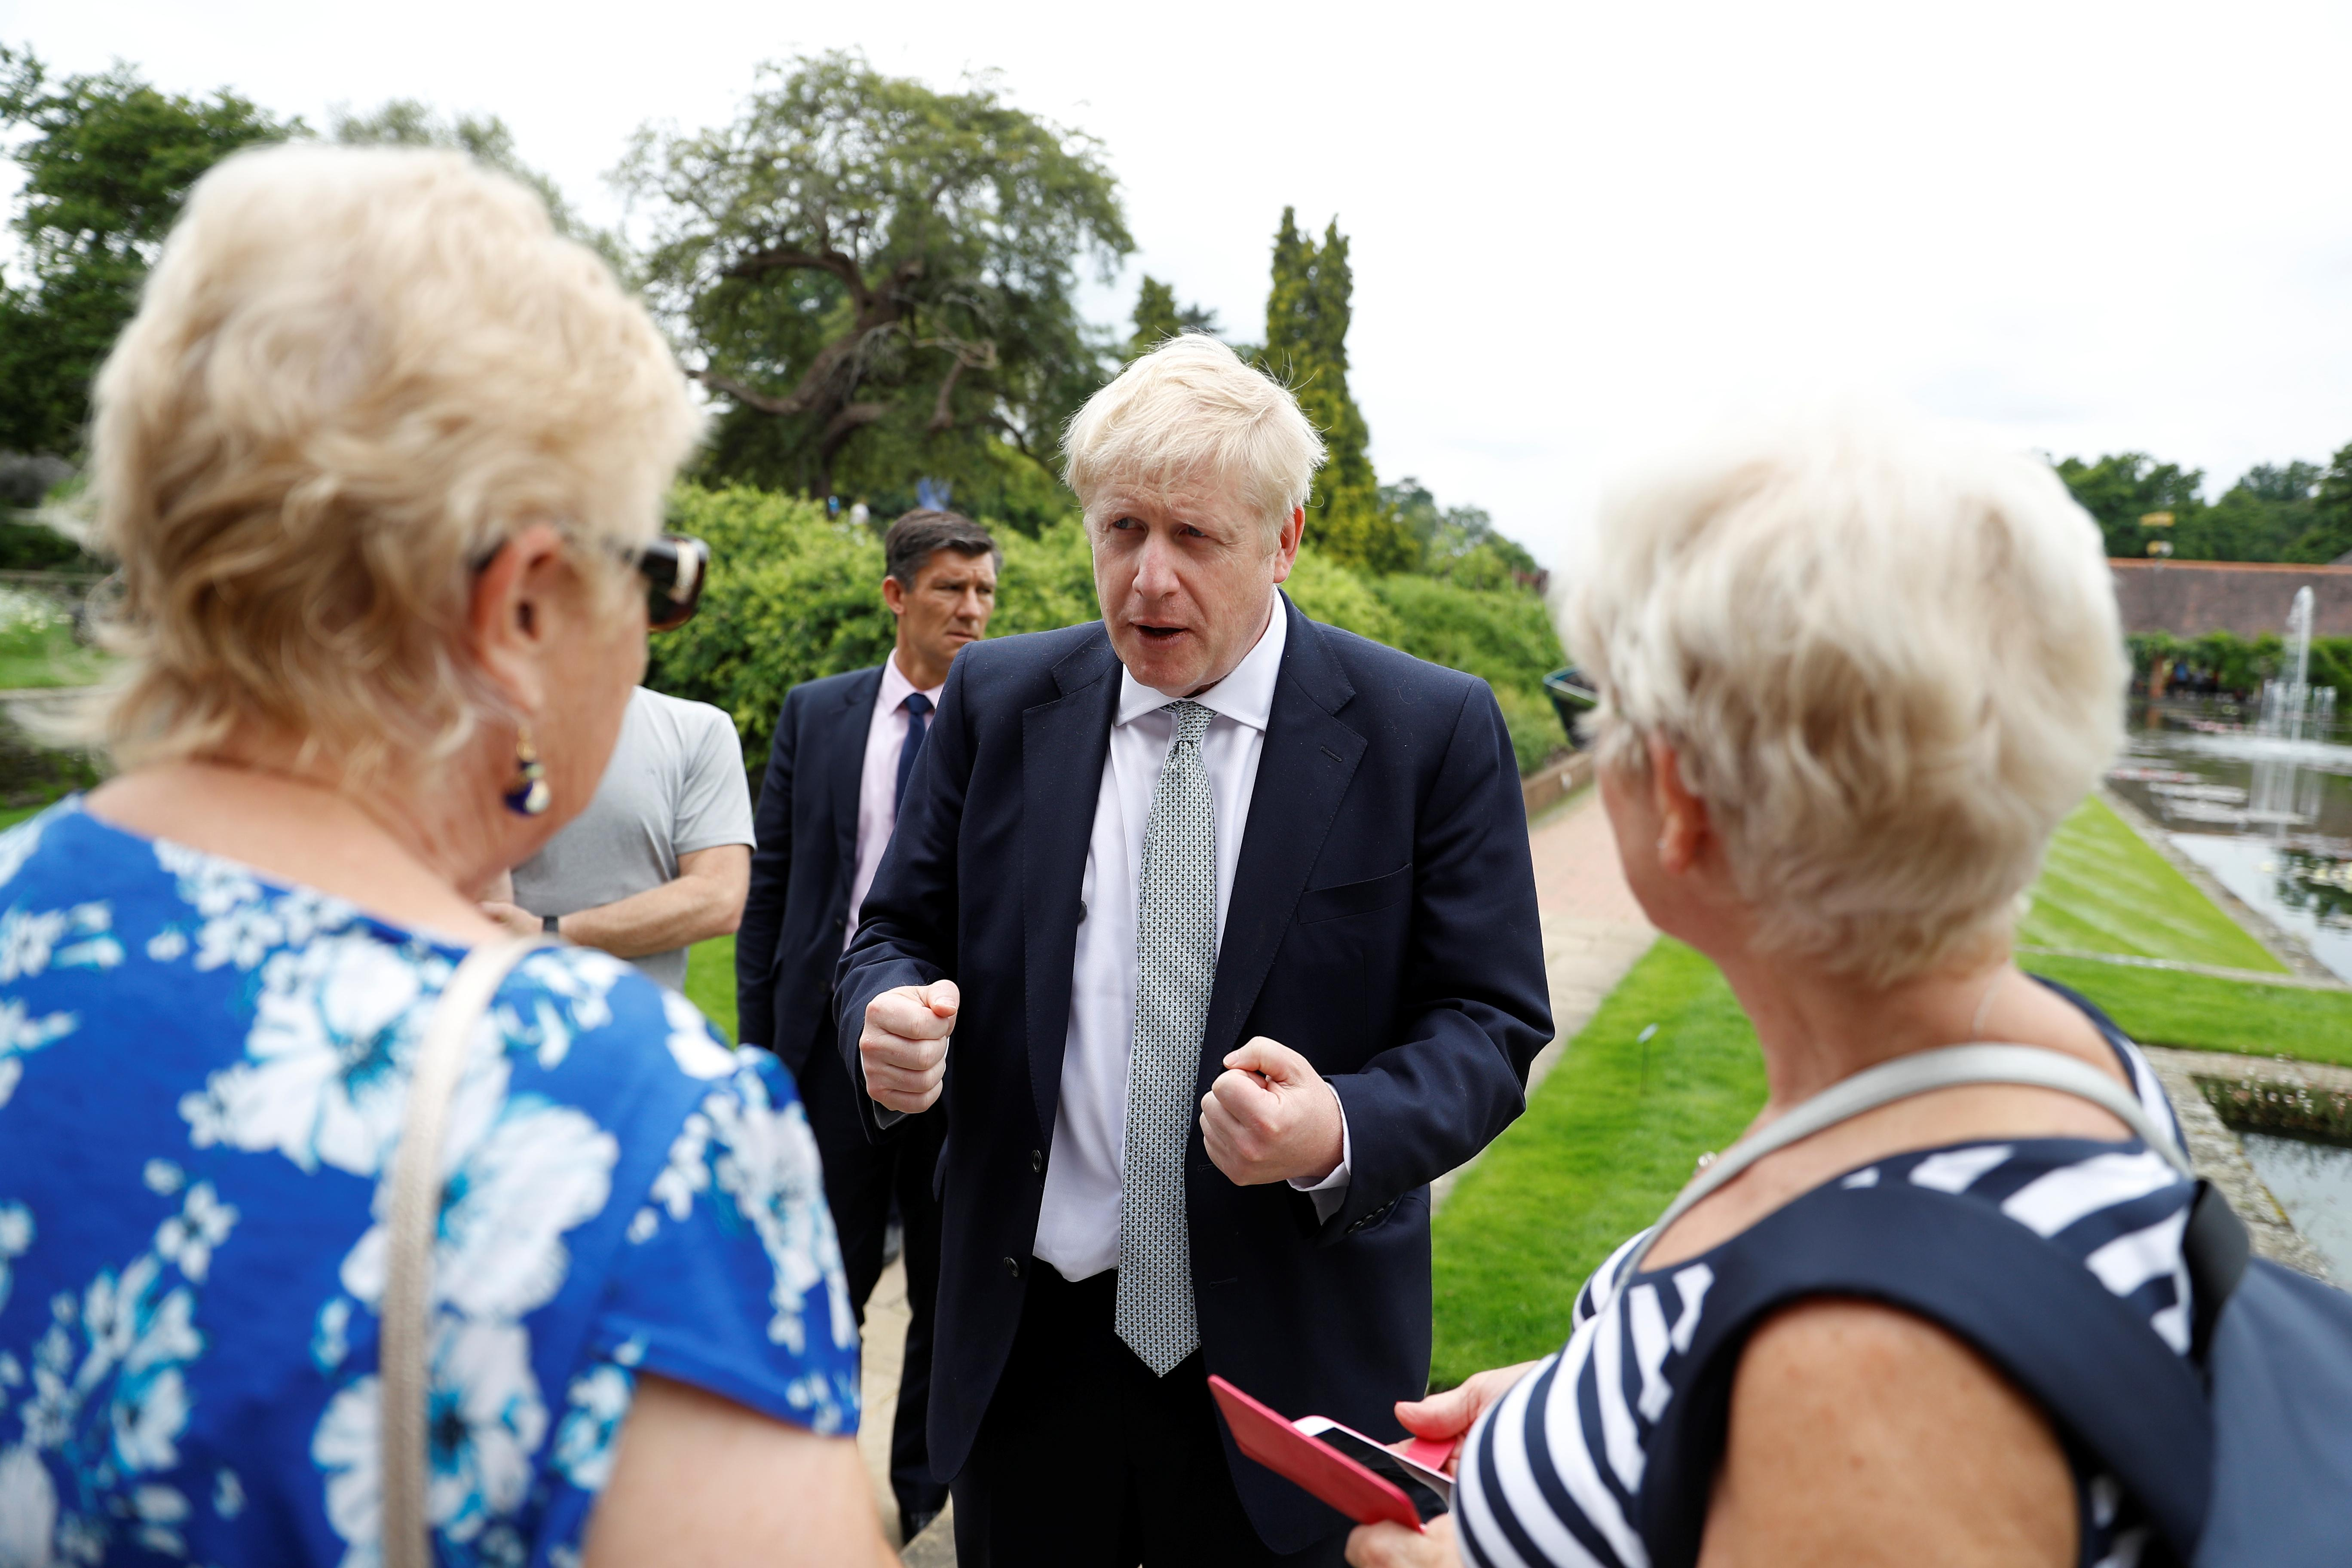 Boris Johnson for prime minister? It's a love-hate thing, say voters